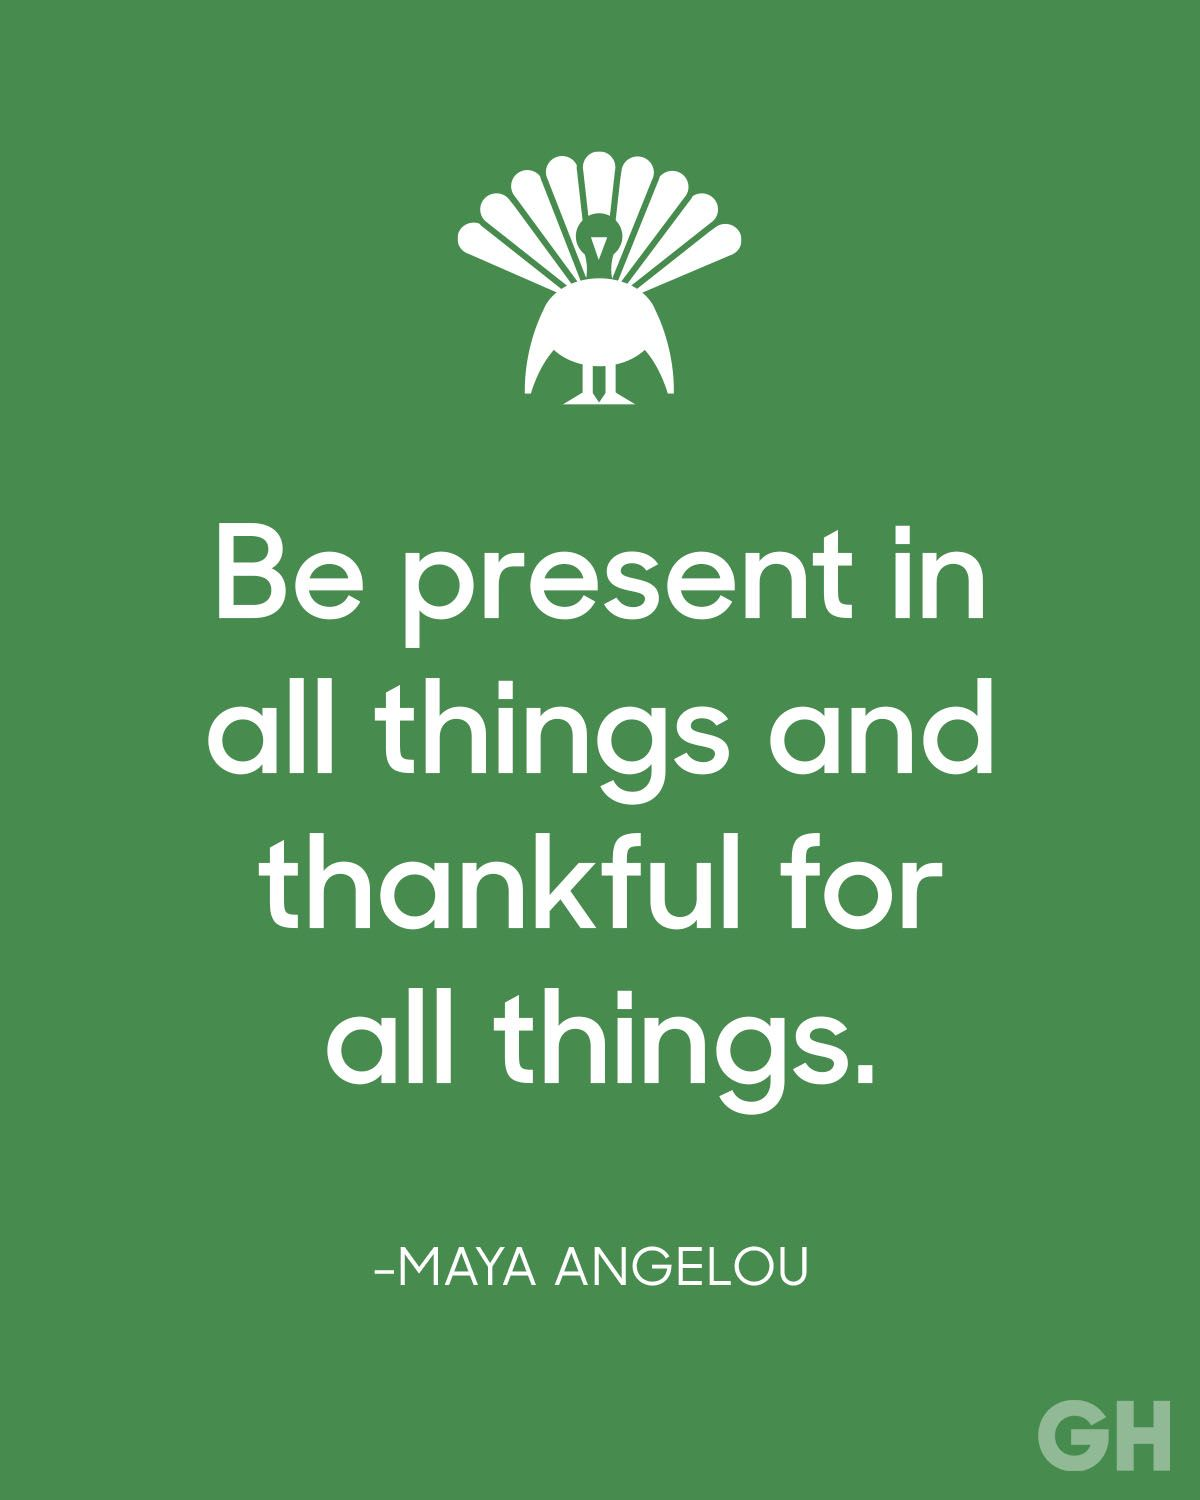 32 Best Thanksgiving Quotes to Share at Your Table ...